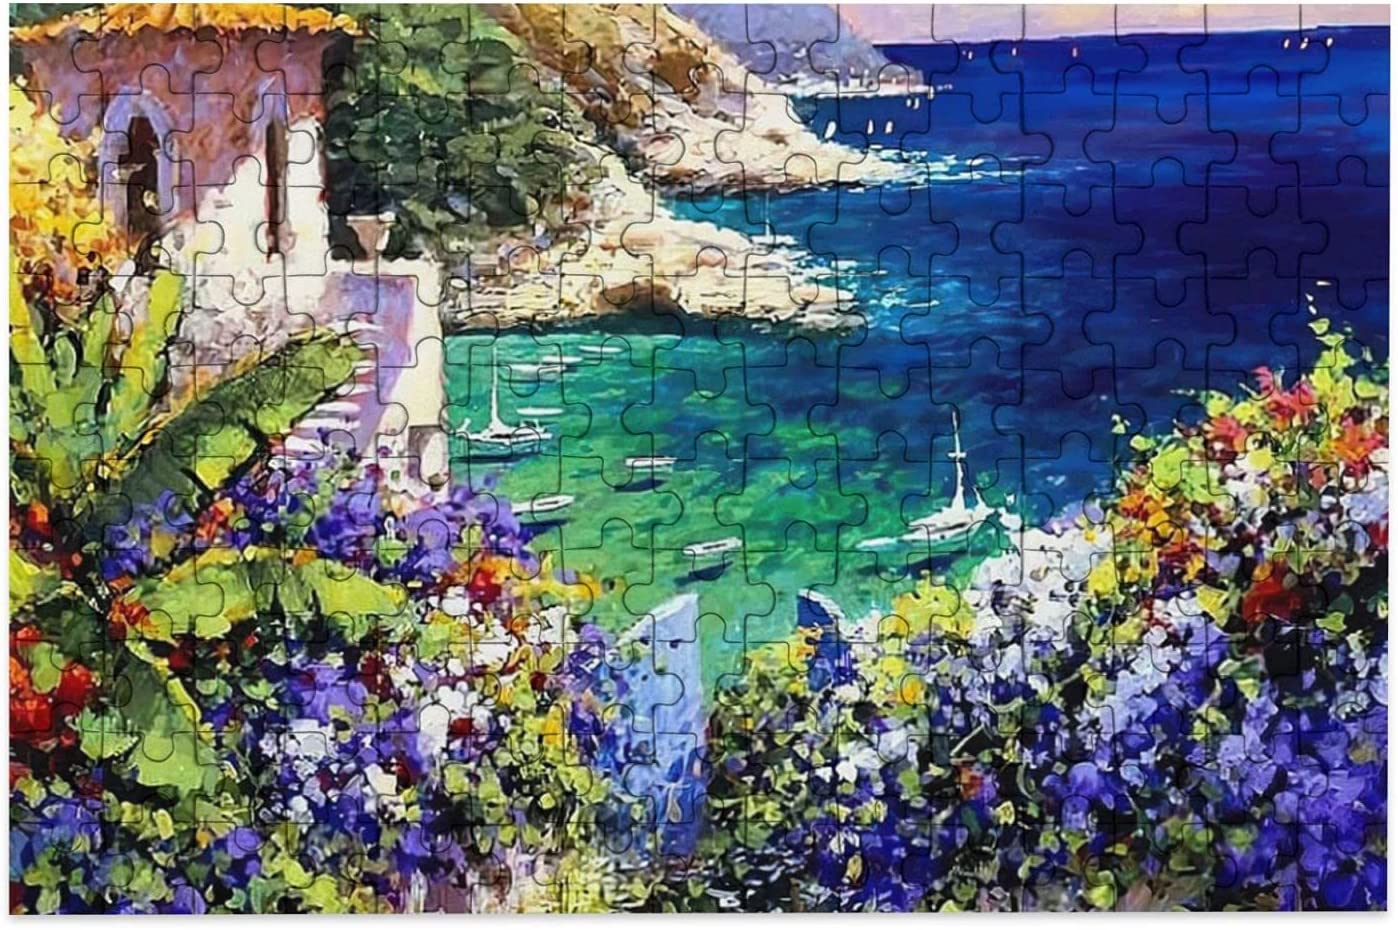 Glorious Garden Provence Landscape Jigsaw Mini Puzzles 150 Pieces Jigsaw Puzzles Wood Family Fun Puzzle Game Gift For Adults Kids